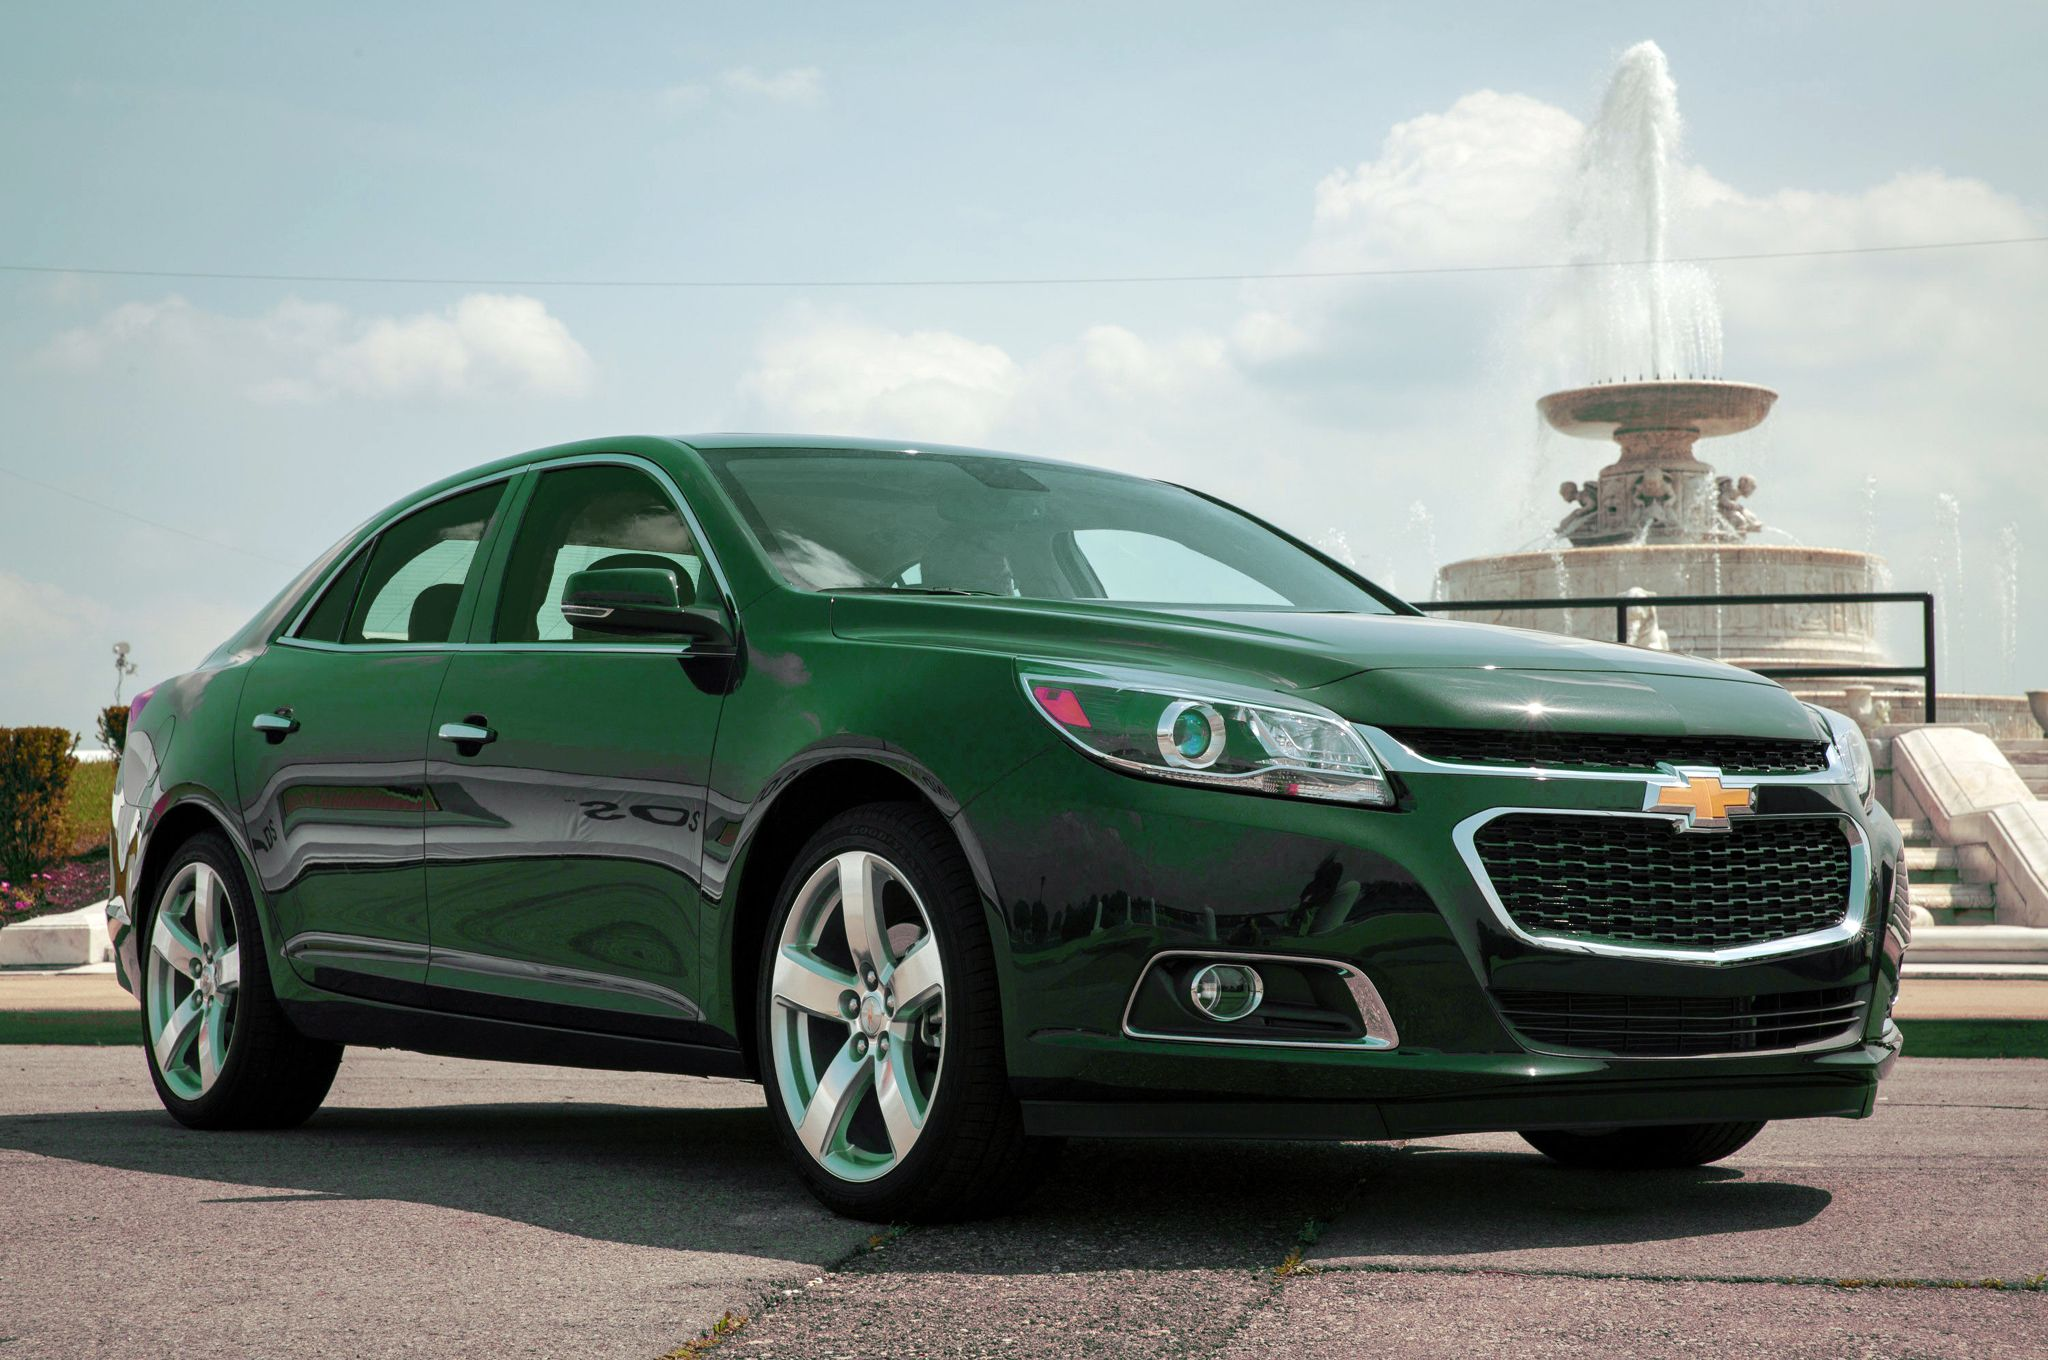 Beautiful Rain Forest Green Chevrolet Malibu In Front Of A